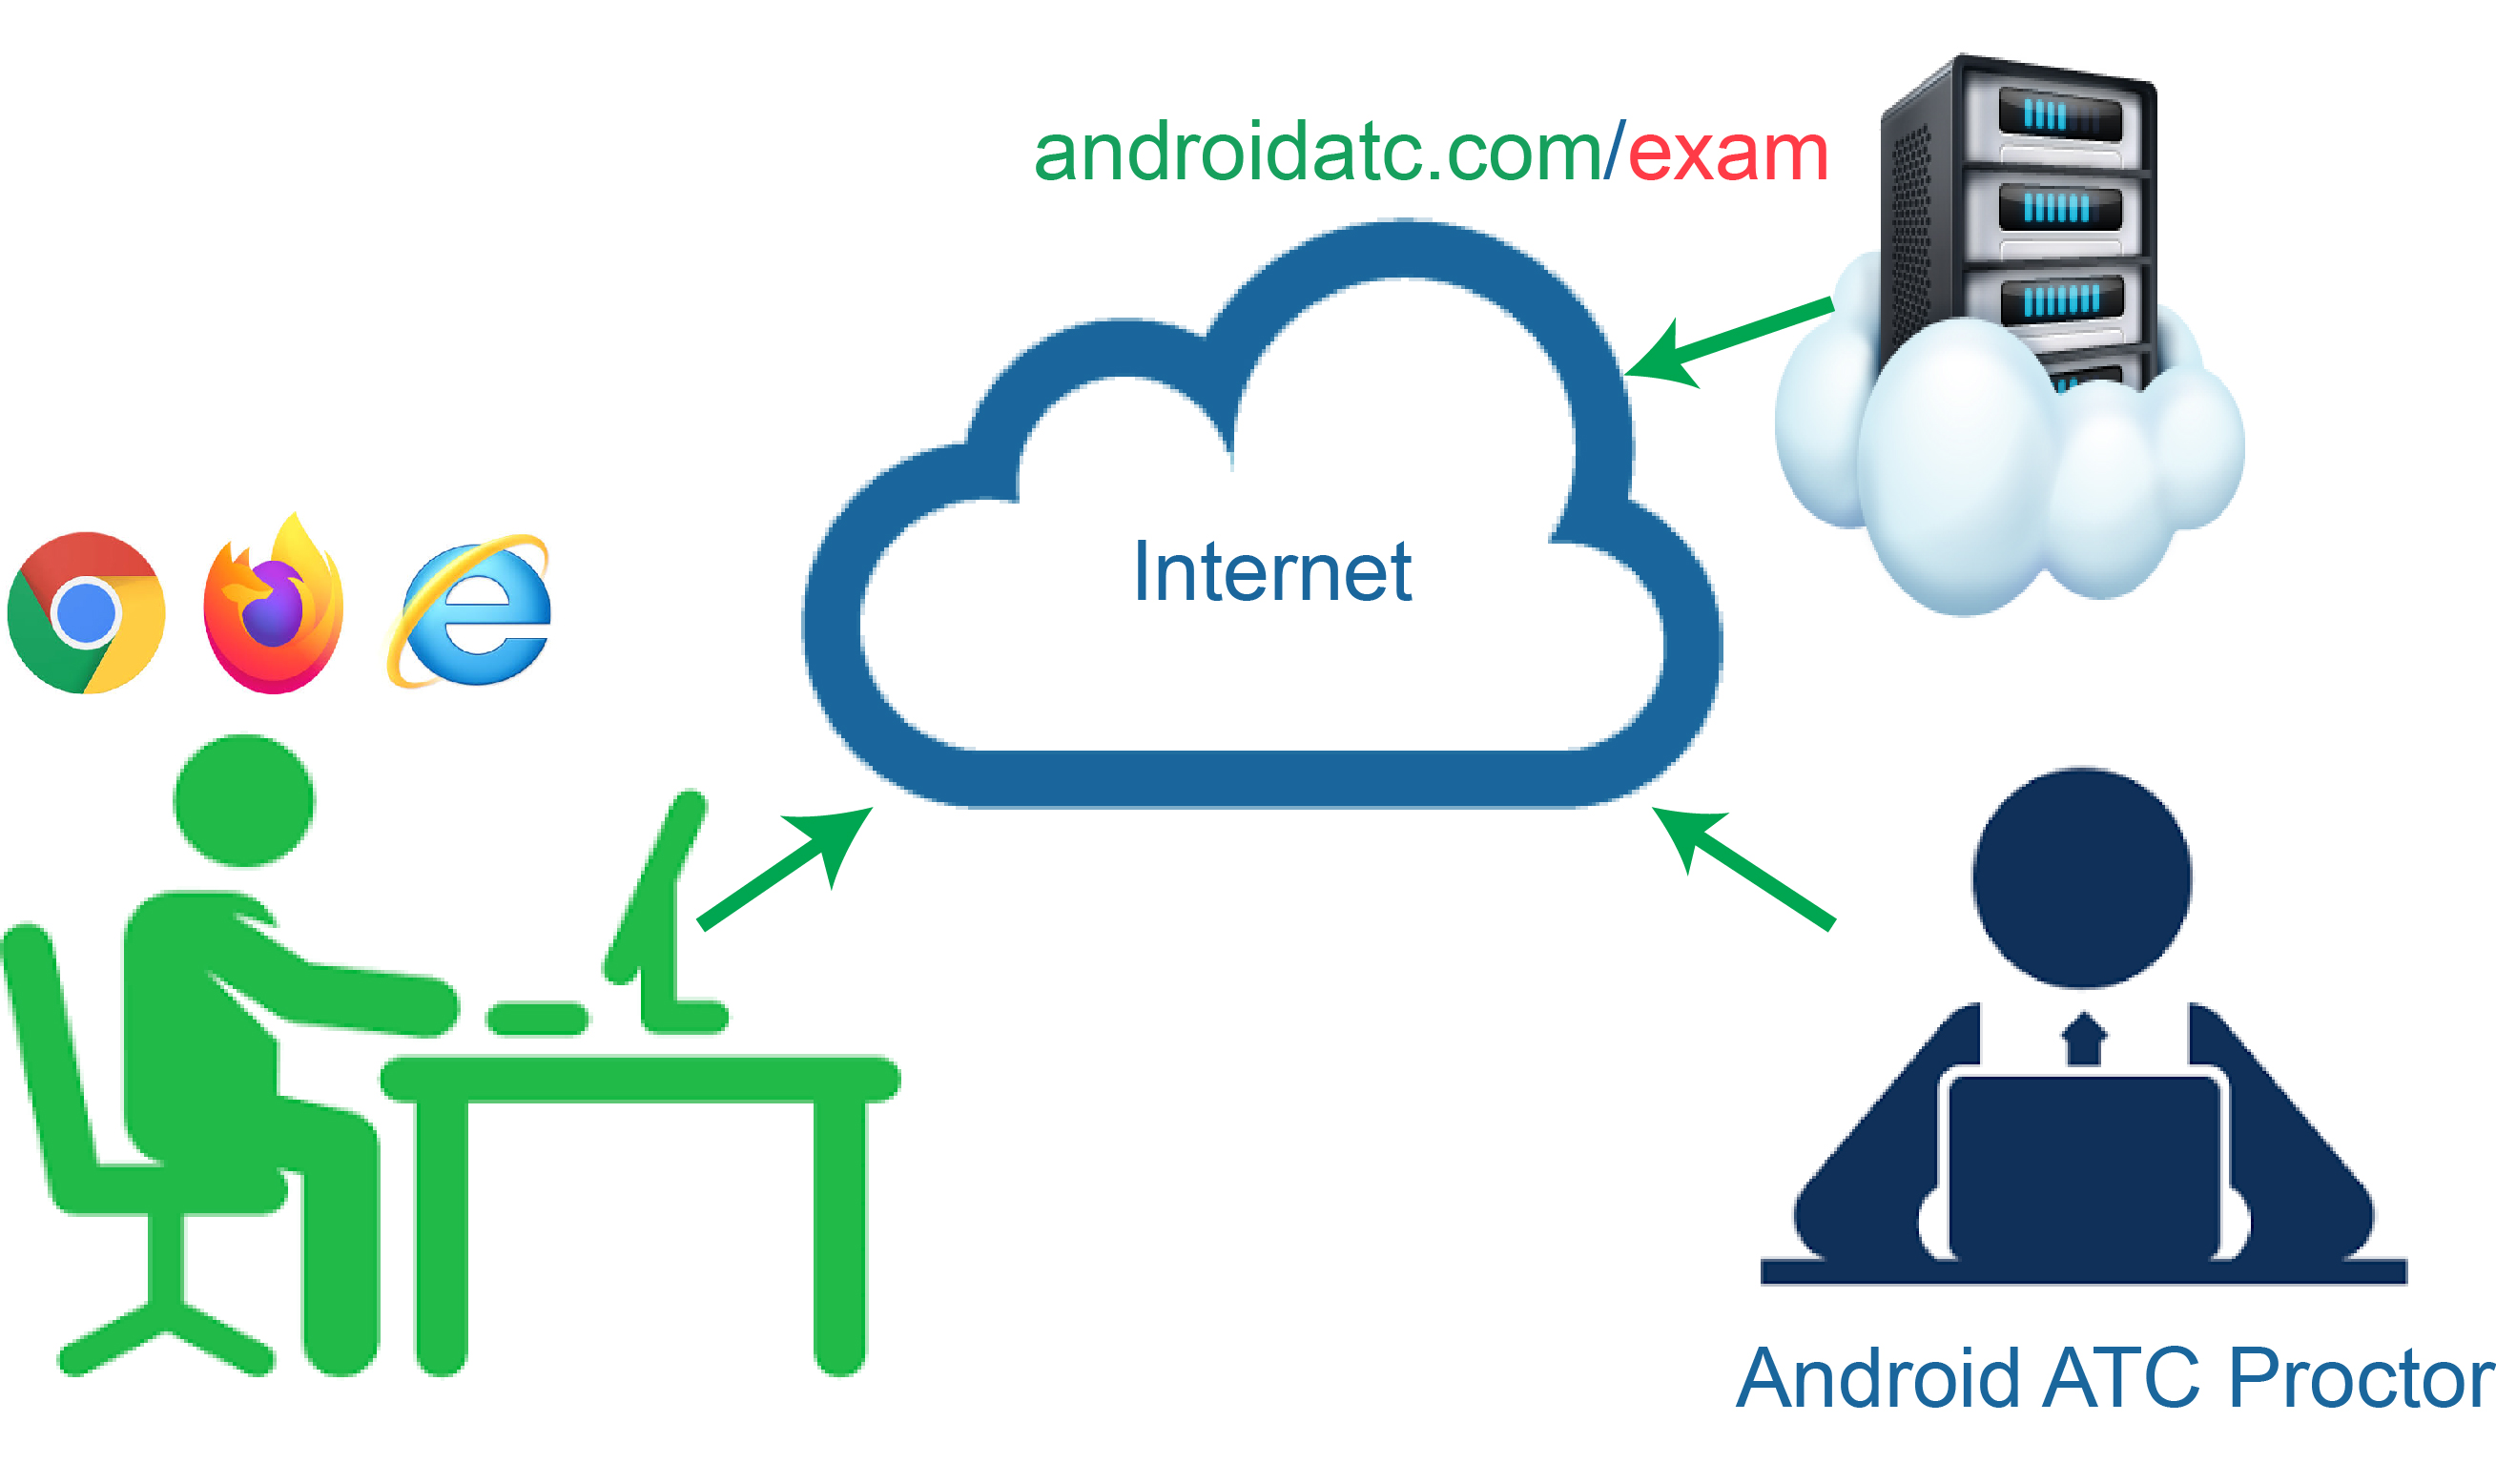 Android ATC online proctored exam